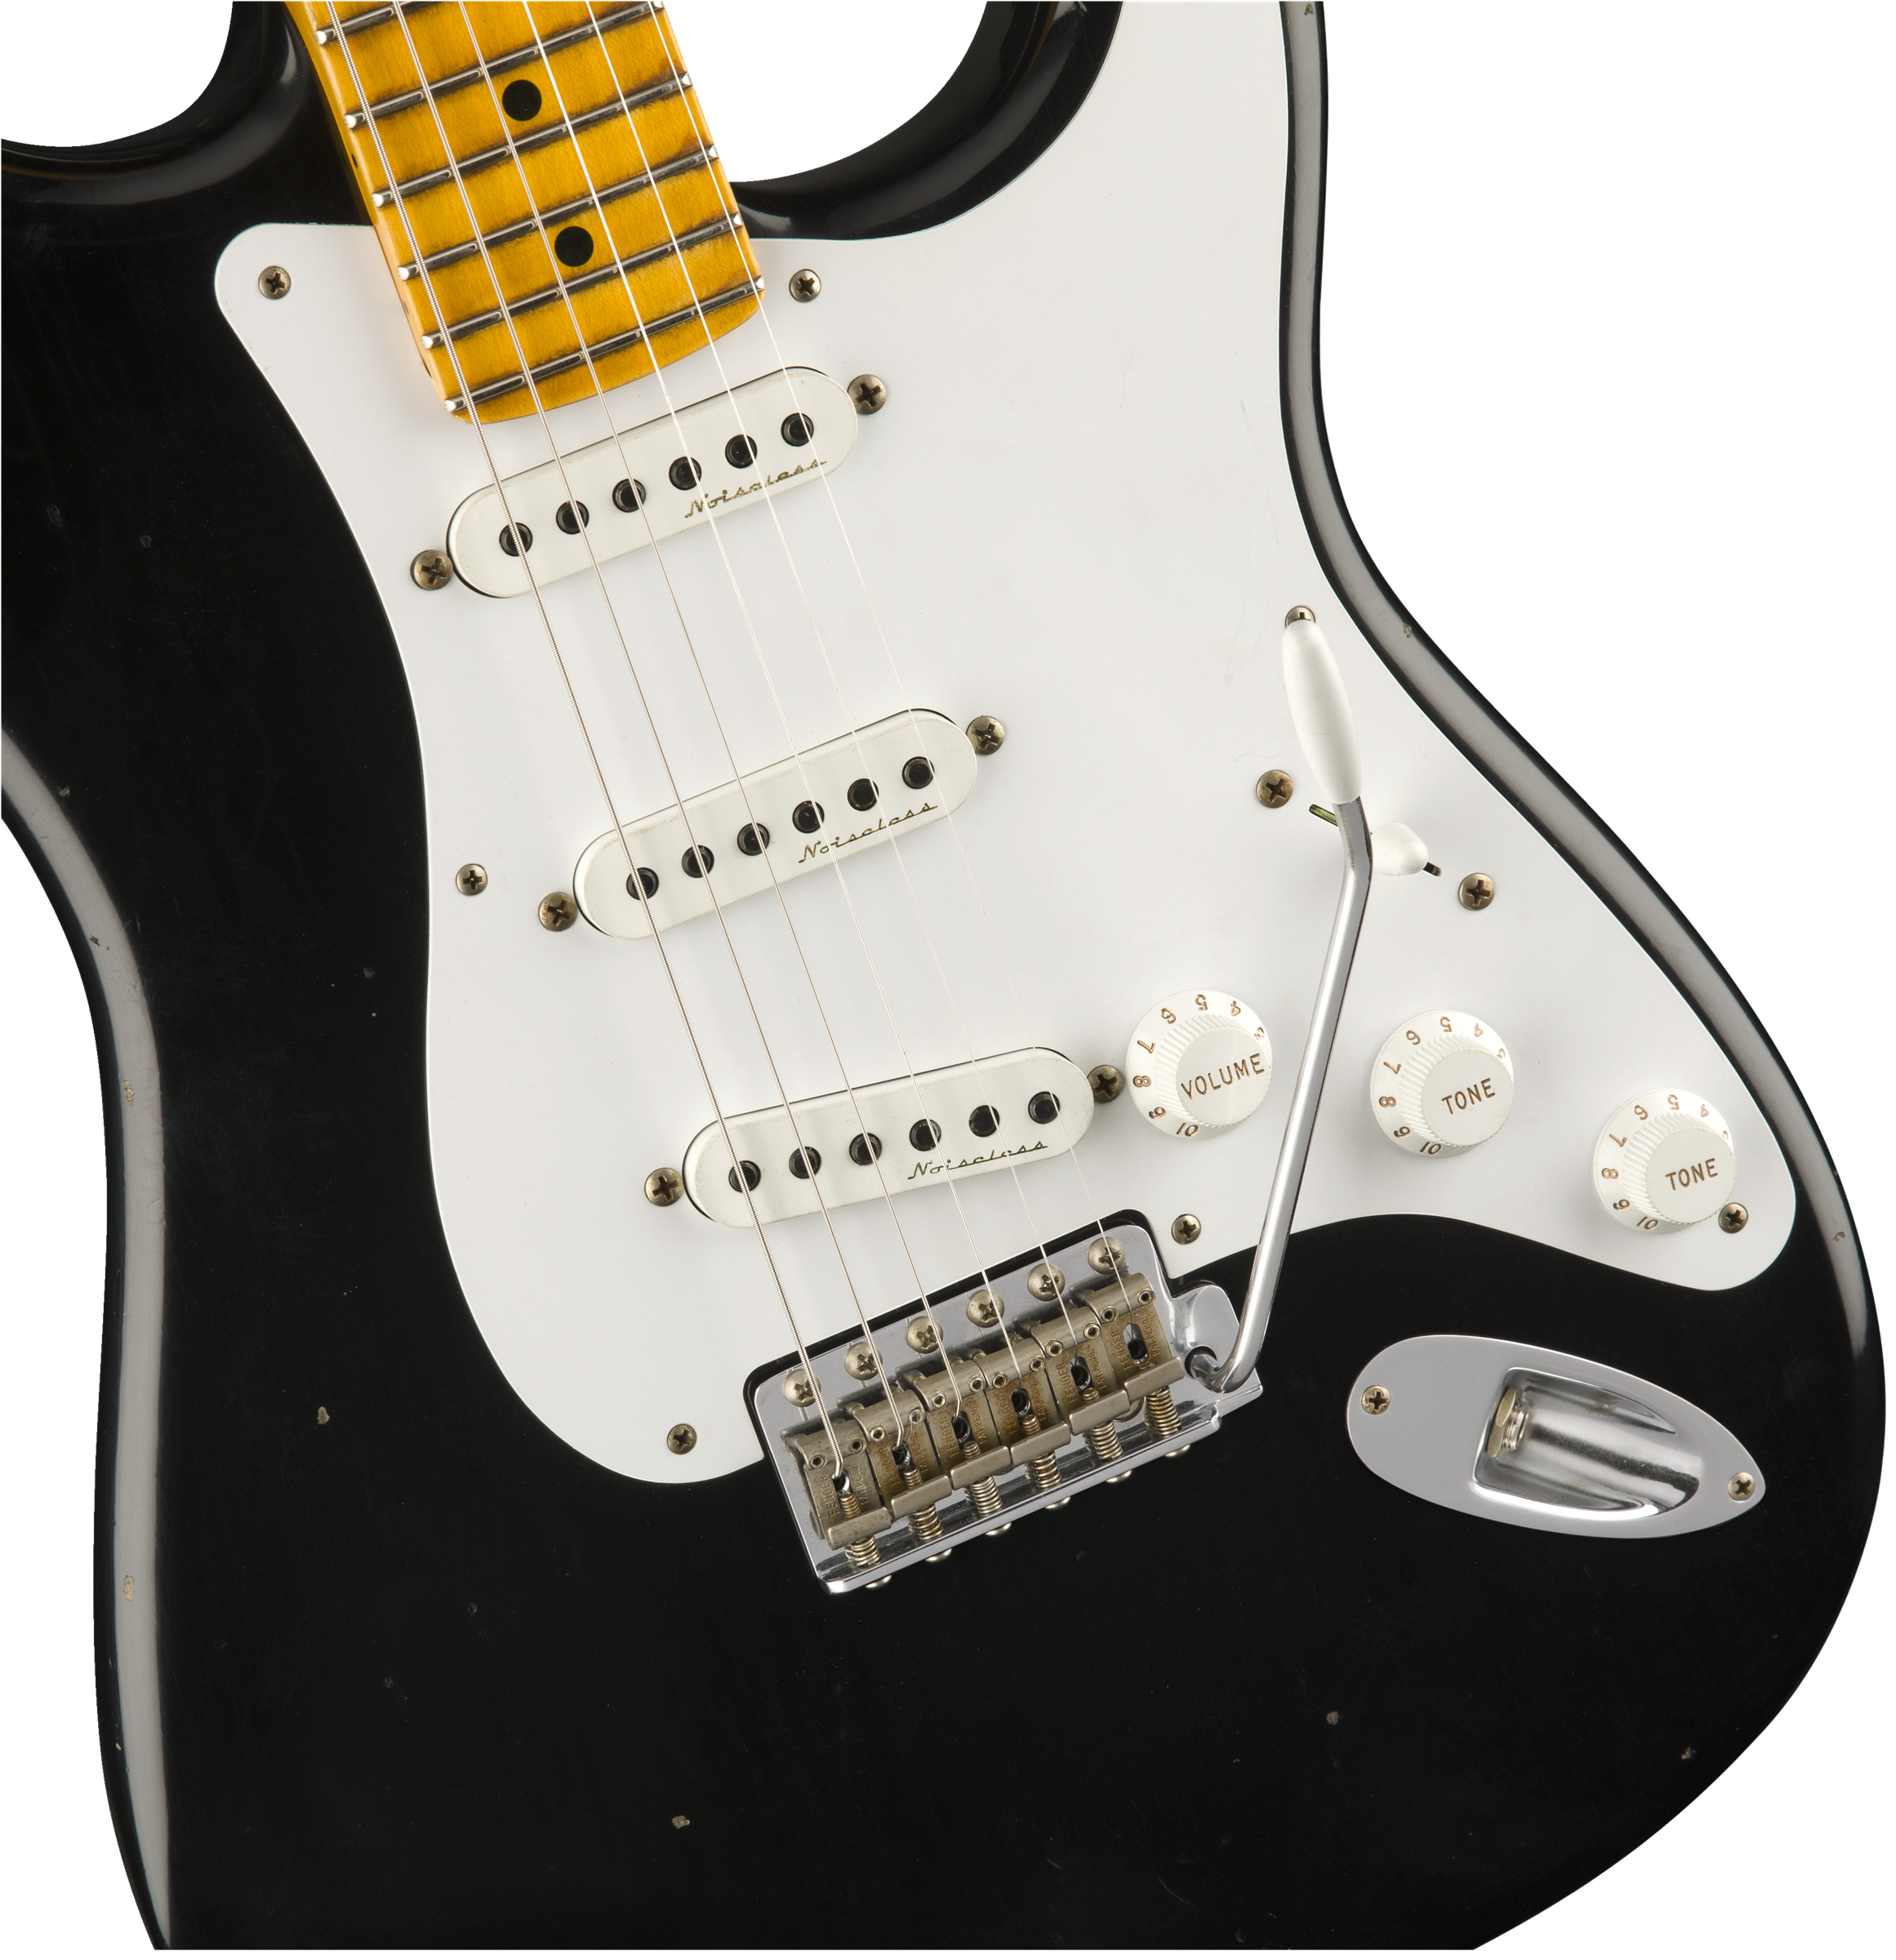 Limited Edition Eric Clapton 30th Anniversary Stratocaster Artist Guitar Kit Builder Understanding The 5way Switch Hover To Zoom